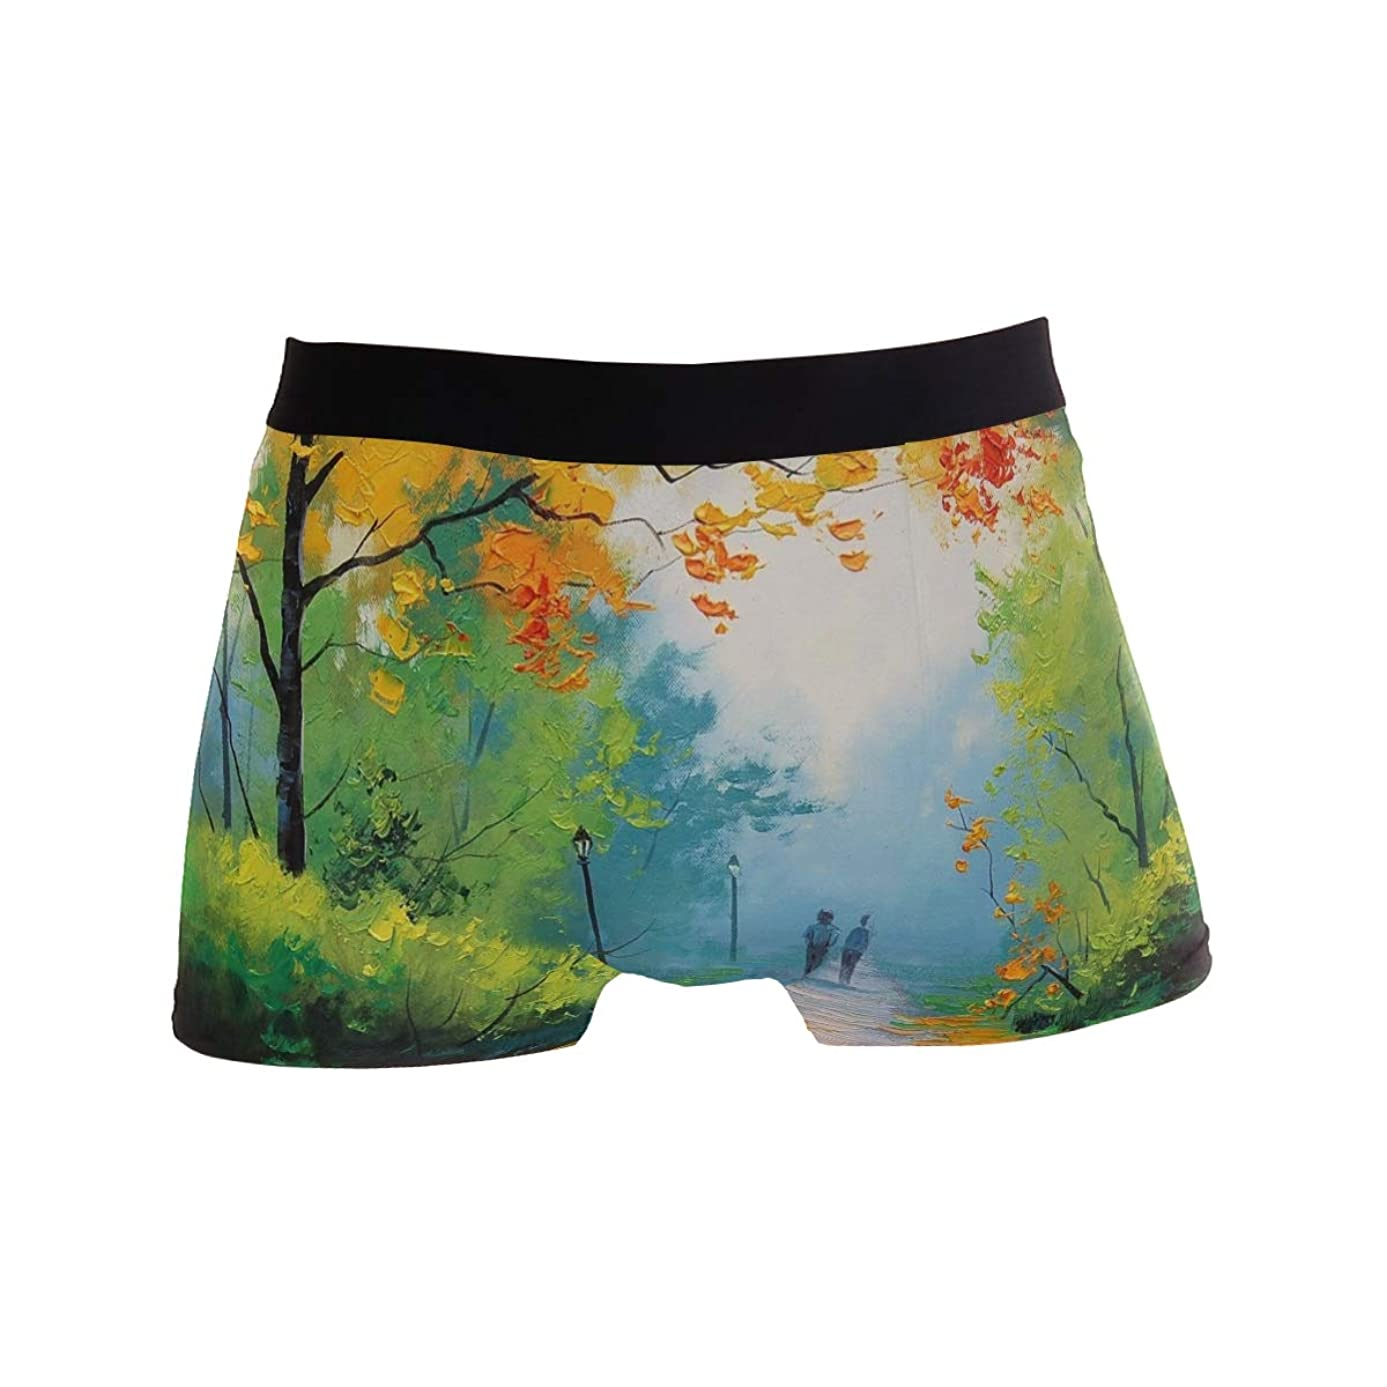 Beautiful Nature Scenery Painting Men's Boxer Briefs Regular Soft Breathable Comfortable Underwear